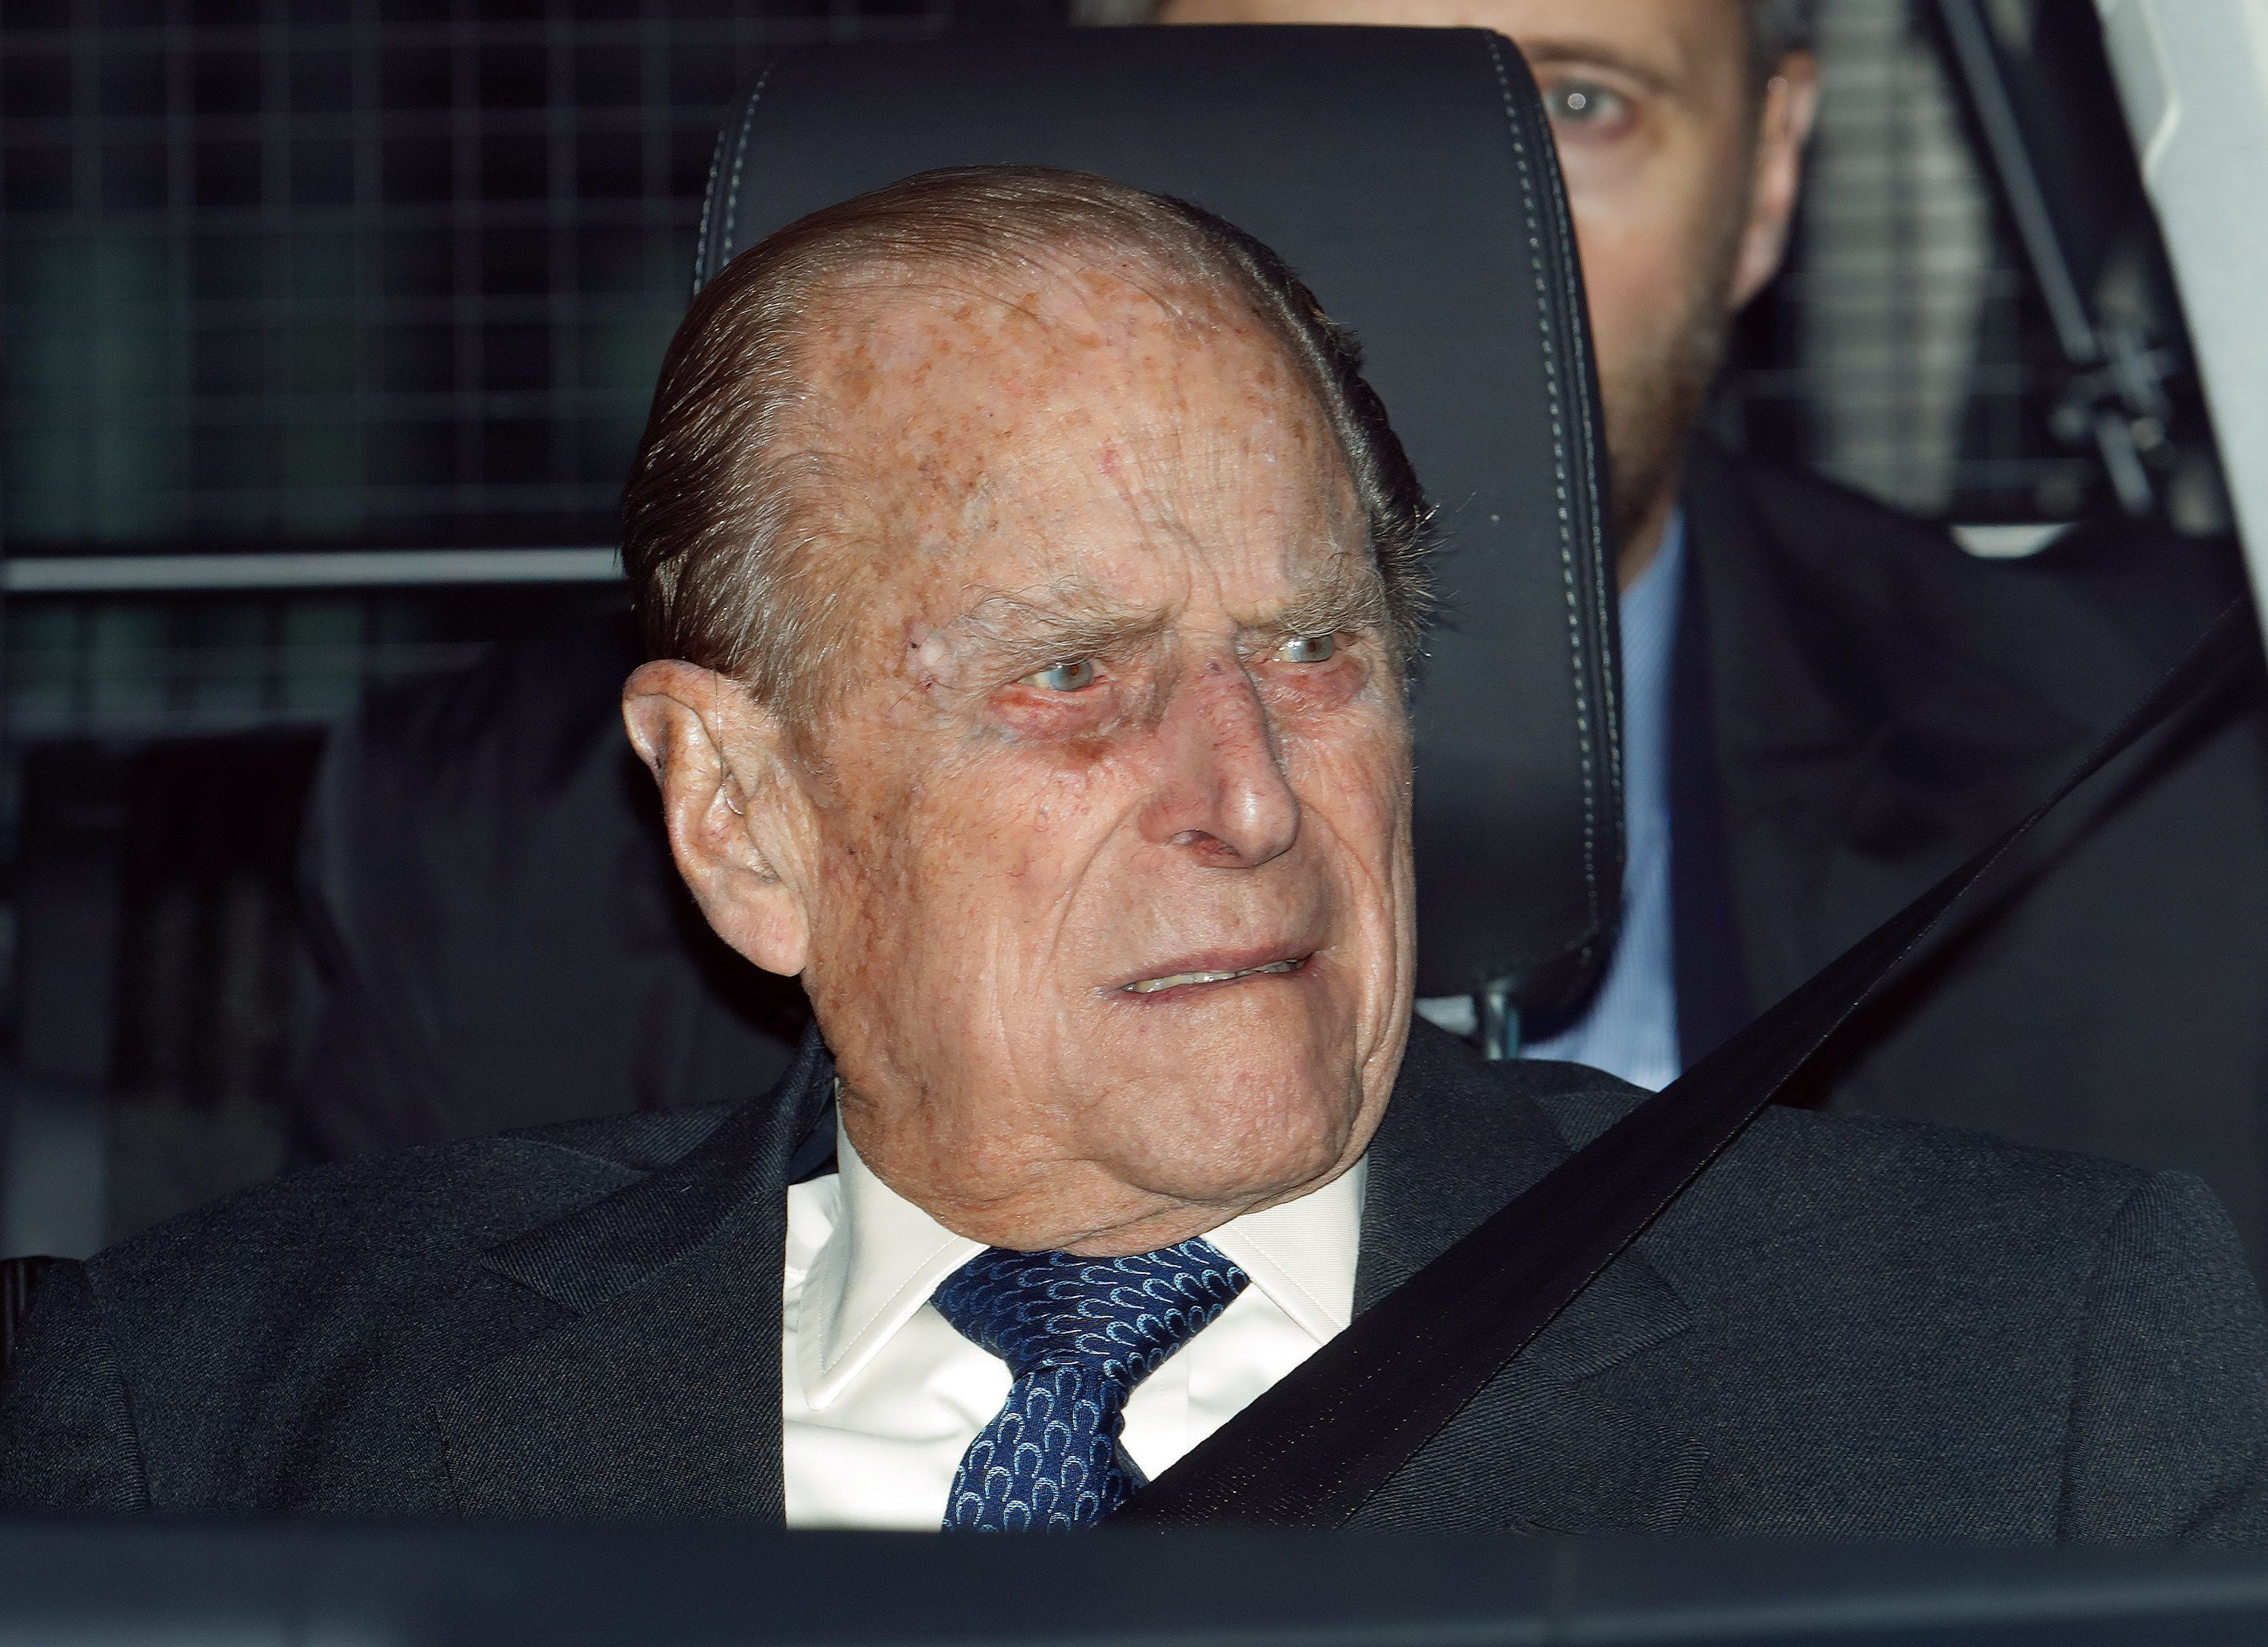 Prince Philip gives up driver's licence